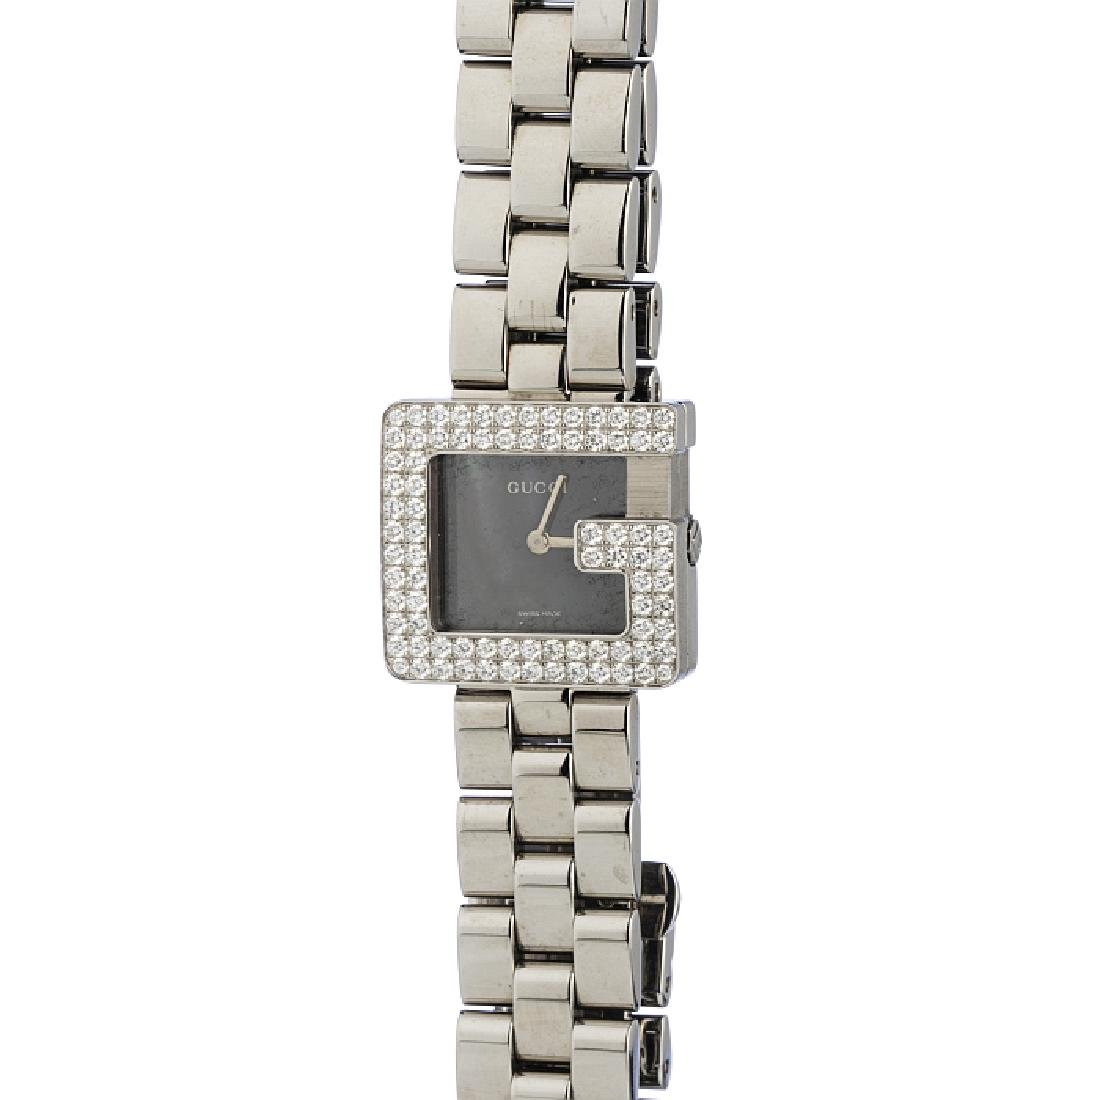 GUCCI - Lady's steel watch with diamonds